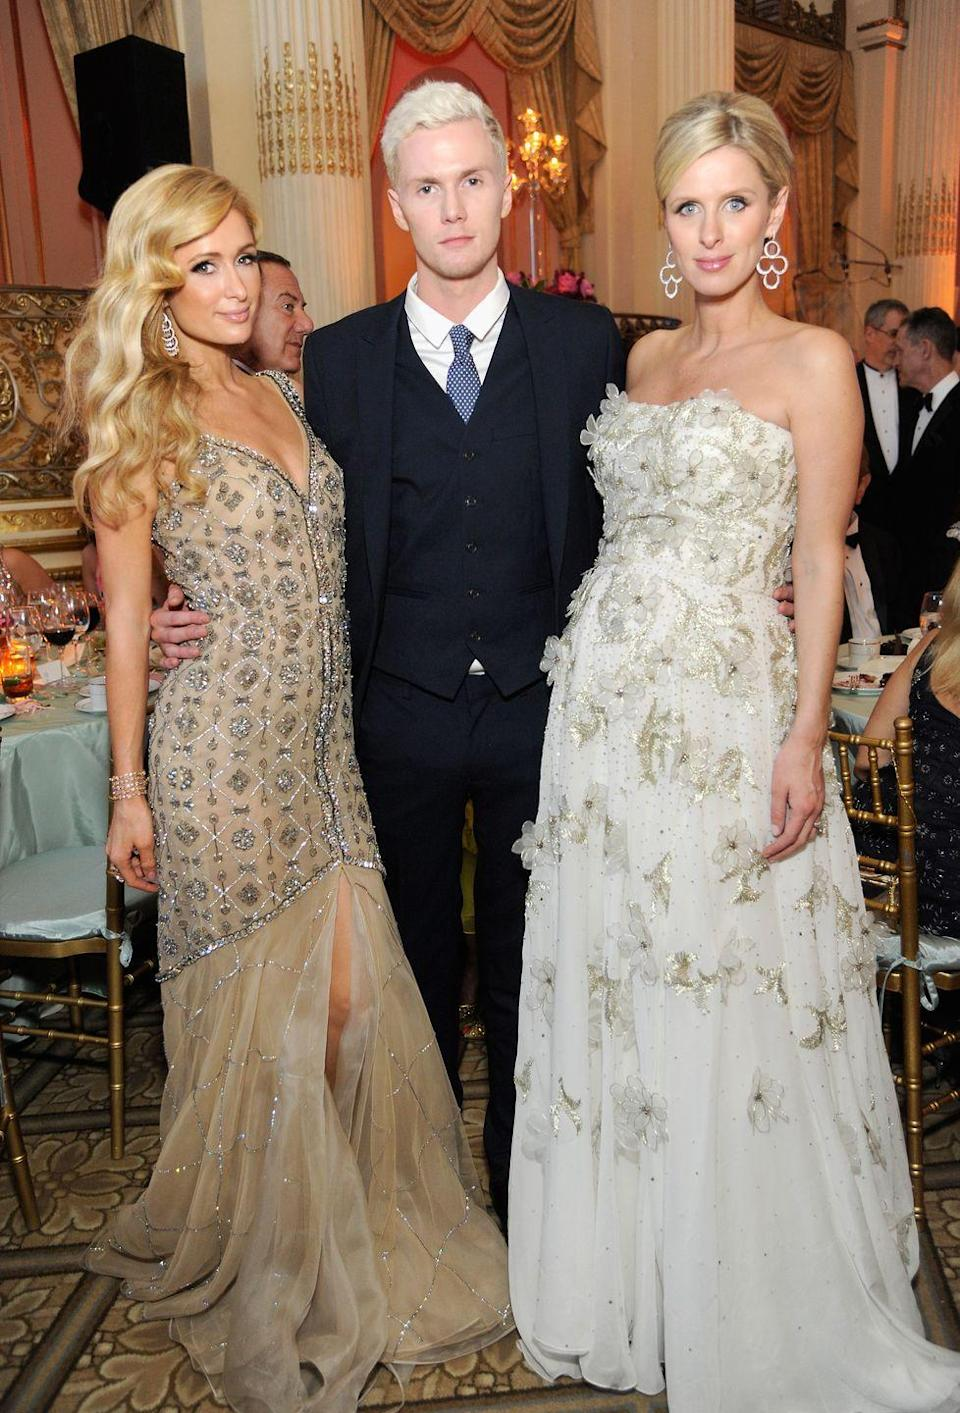 <p> While Nicky Hilton is typically compared to her older sister, Paris Hilton, it's her younger brother that she more closely resembles. Both siblings have square angular faces and round eyes. </p>